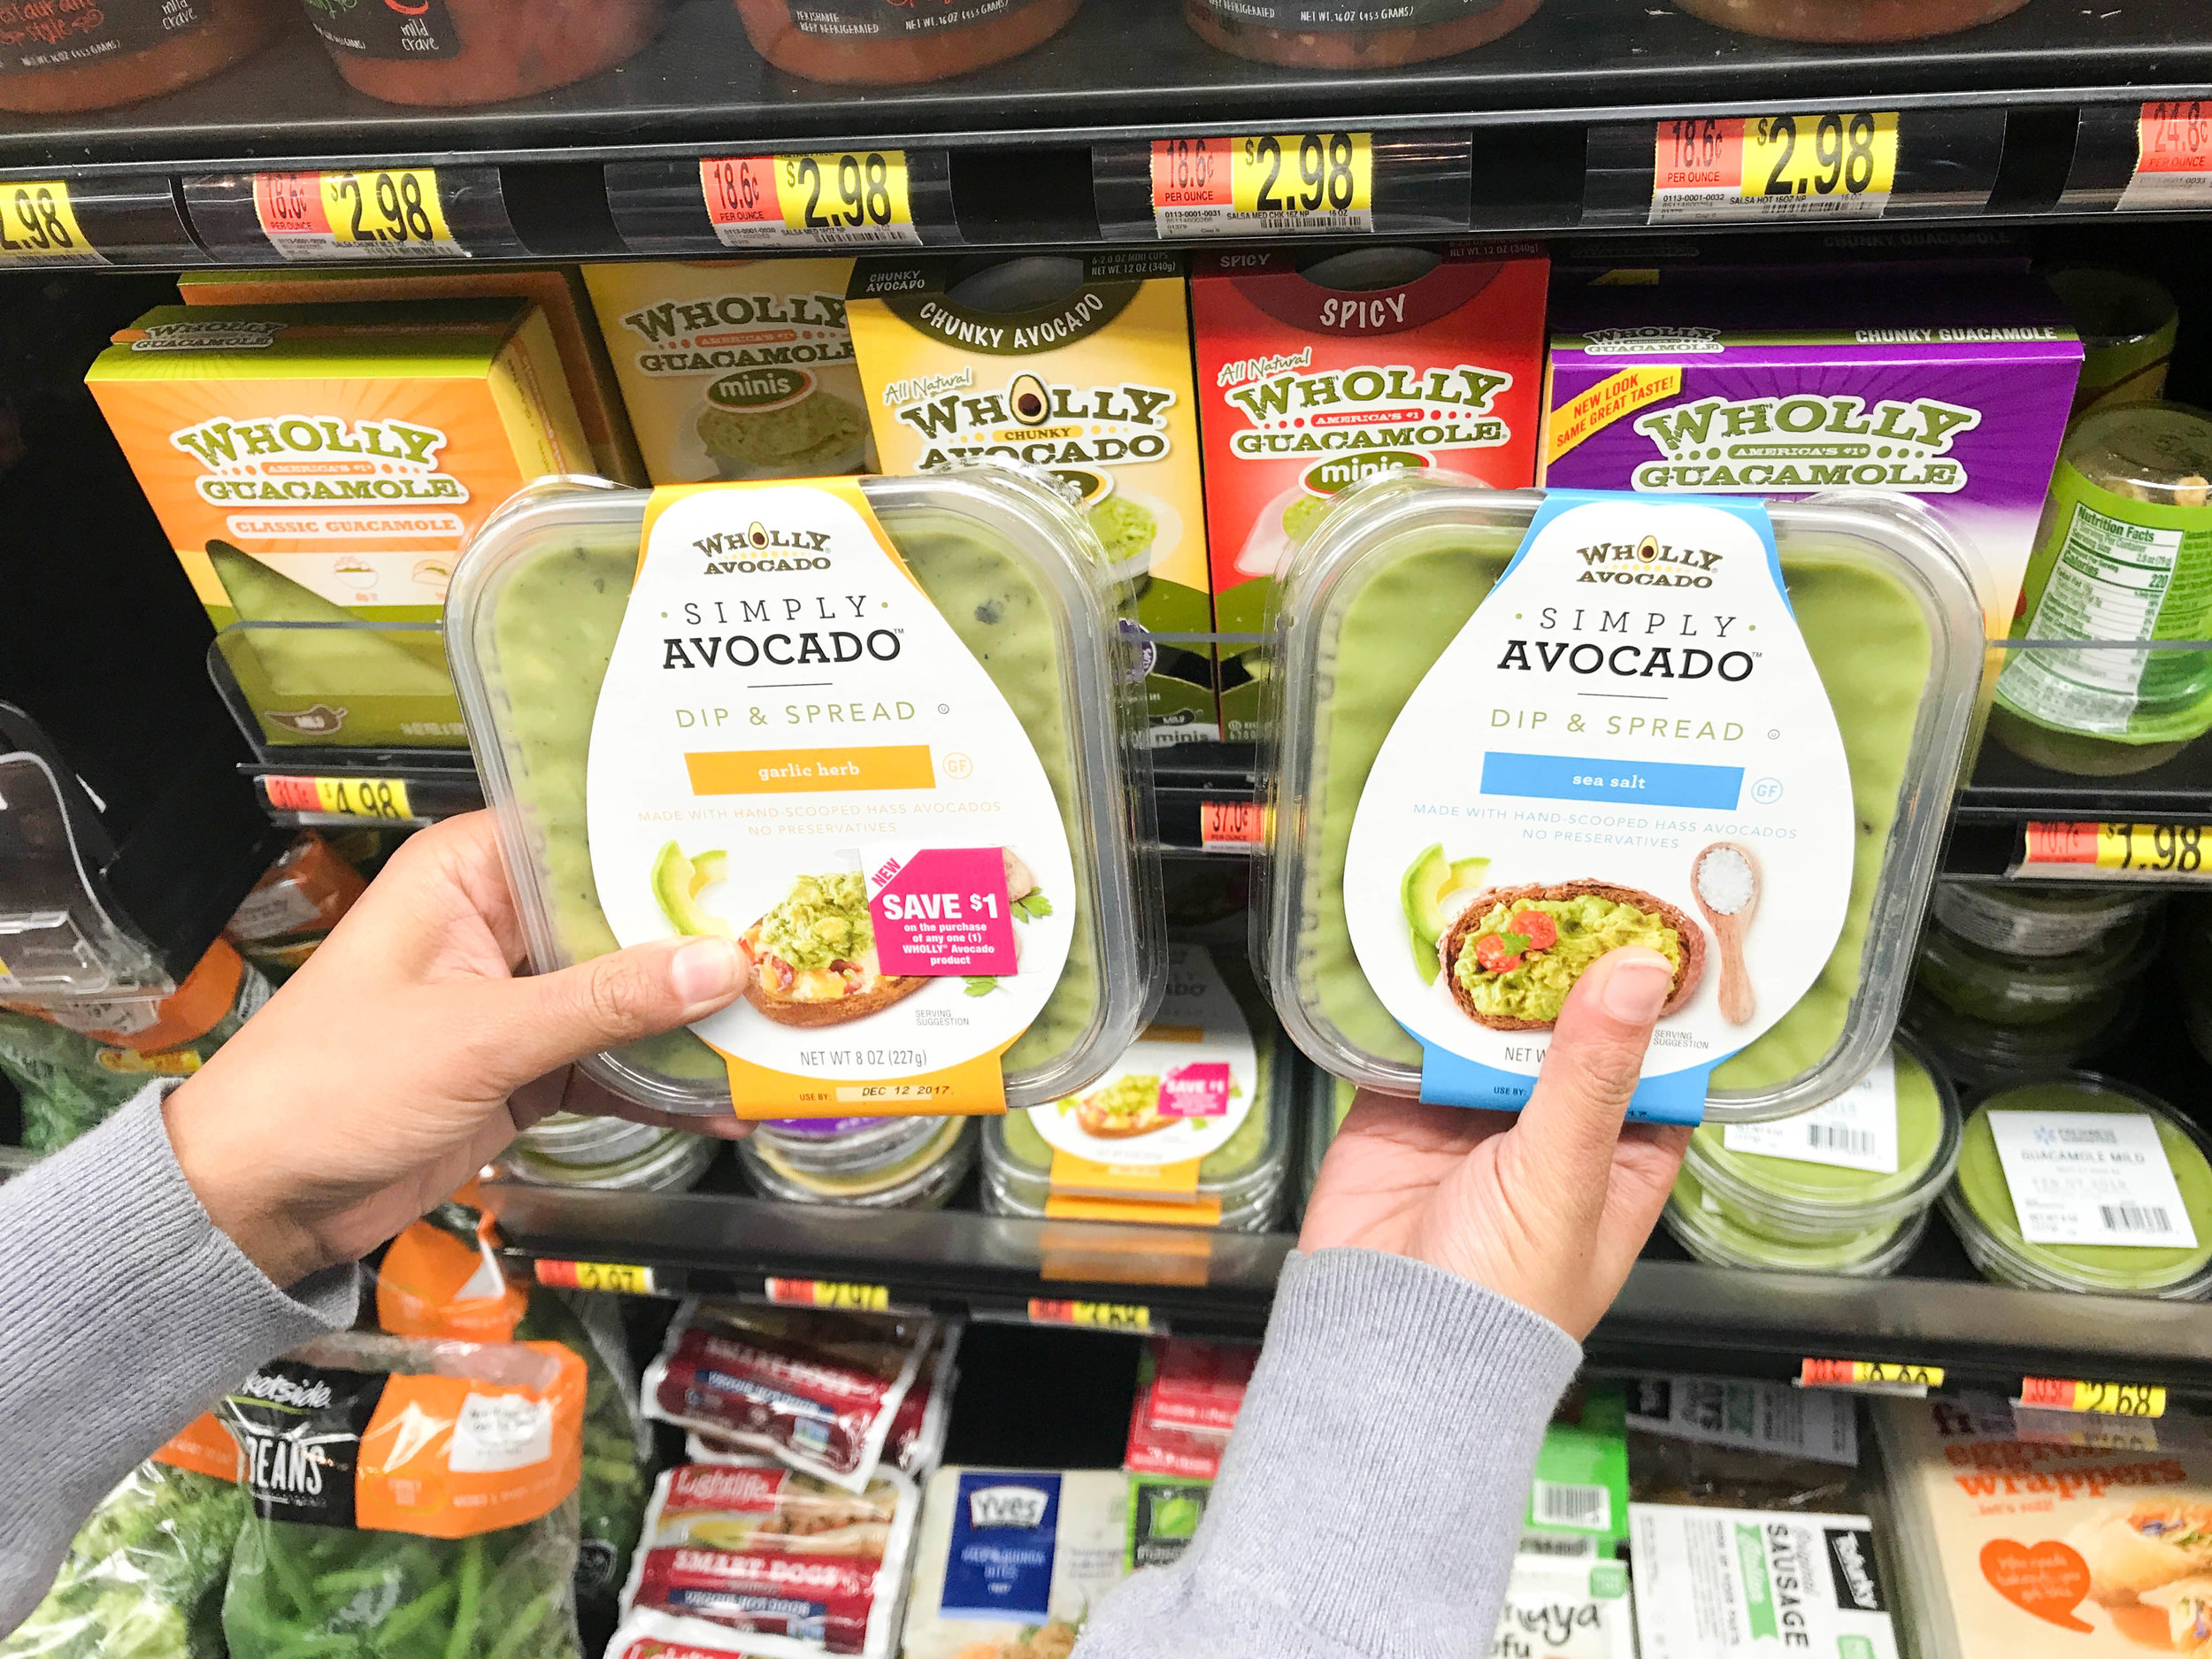 - I hope you will pick up few SIMPLY AVOCADO™at your local Walmart. It is conveniently located in the cooler by the deli area.